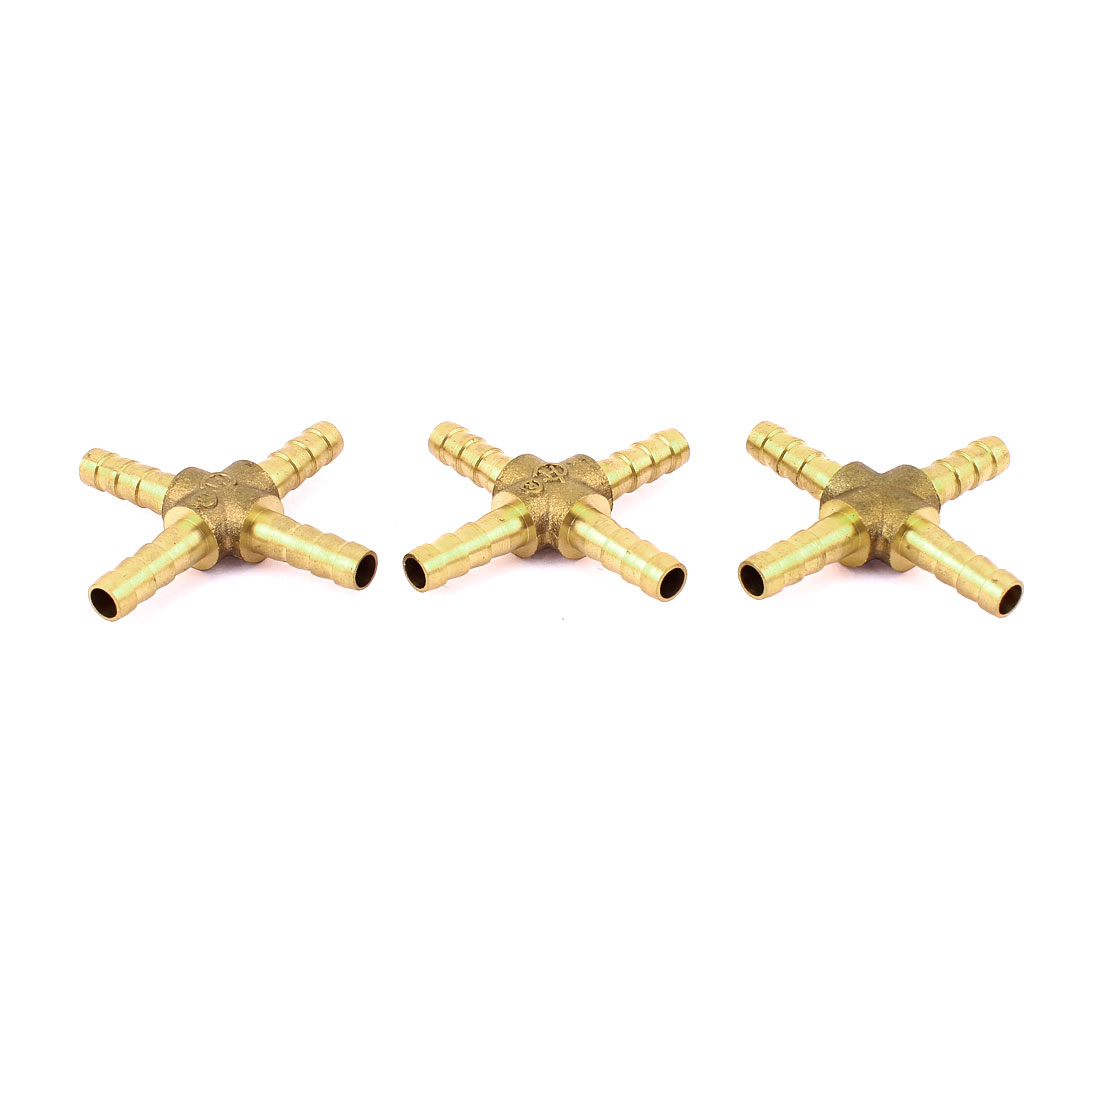 3 Pcs 4 Way Cross Shaped 6.5mm Tube Connector Brass Fuel Hose Barb Fittings